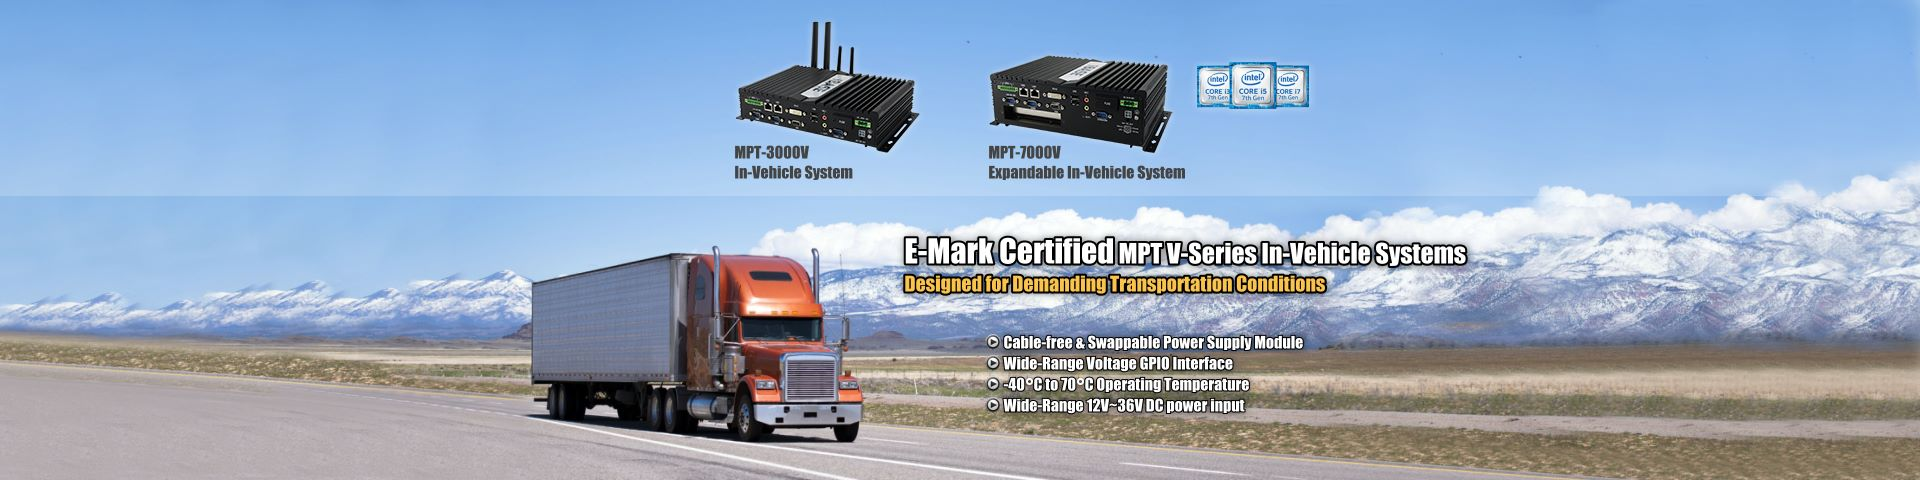 MPT V-Series In-Vehicle Computer Systems